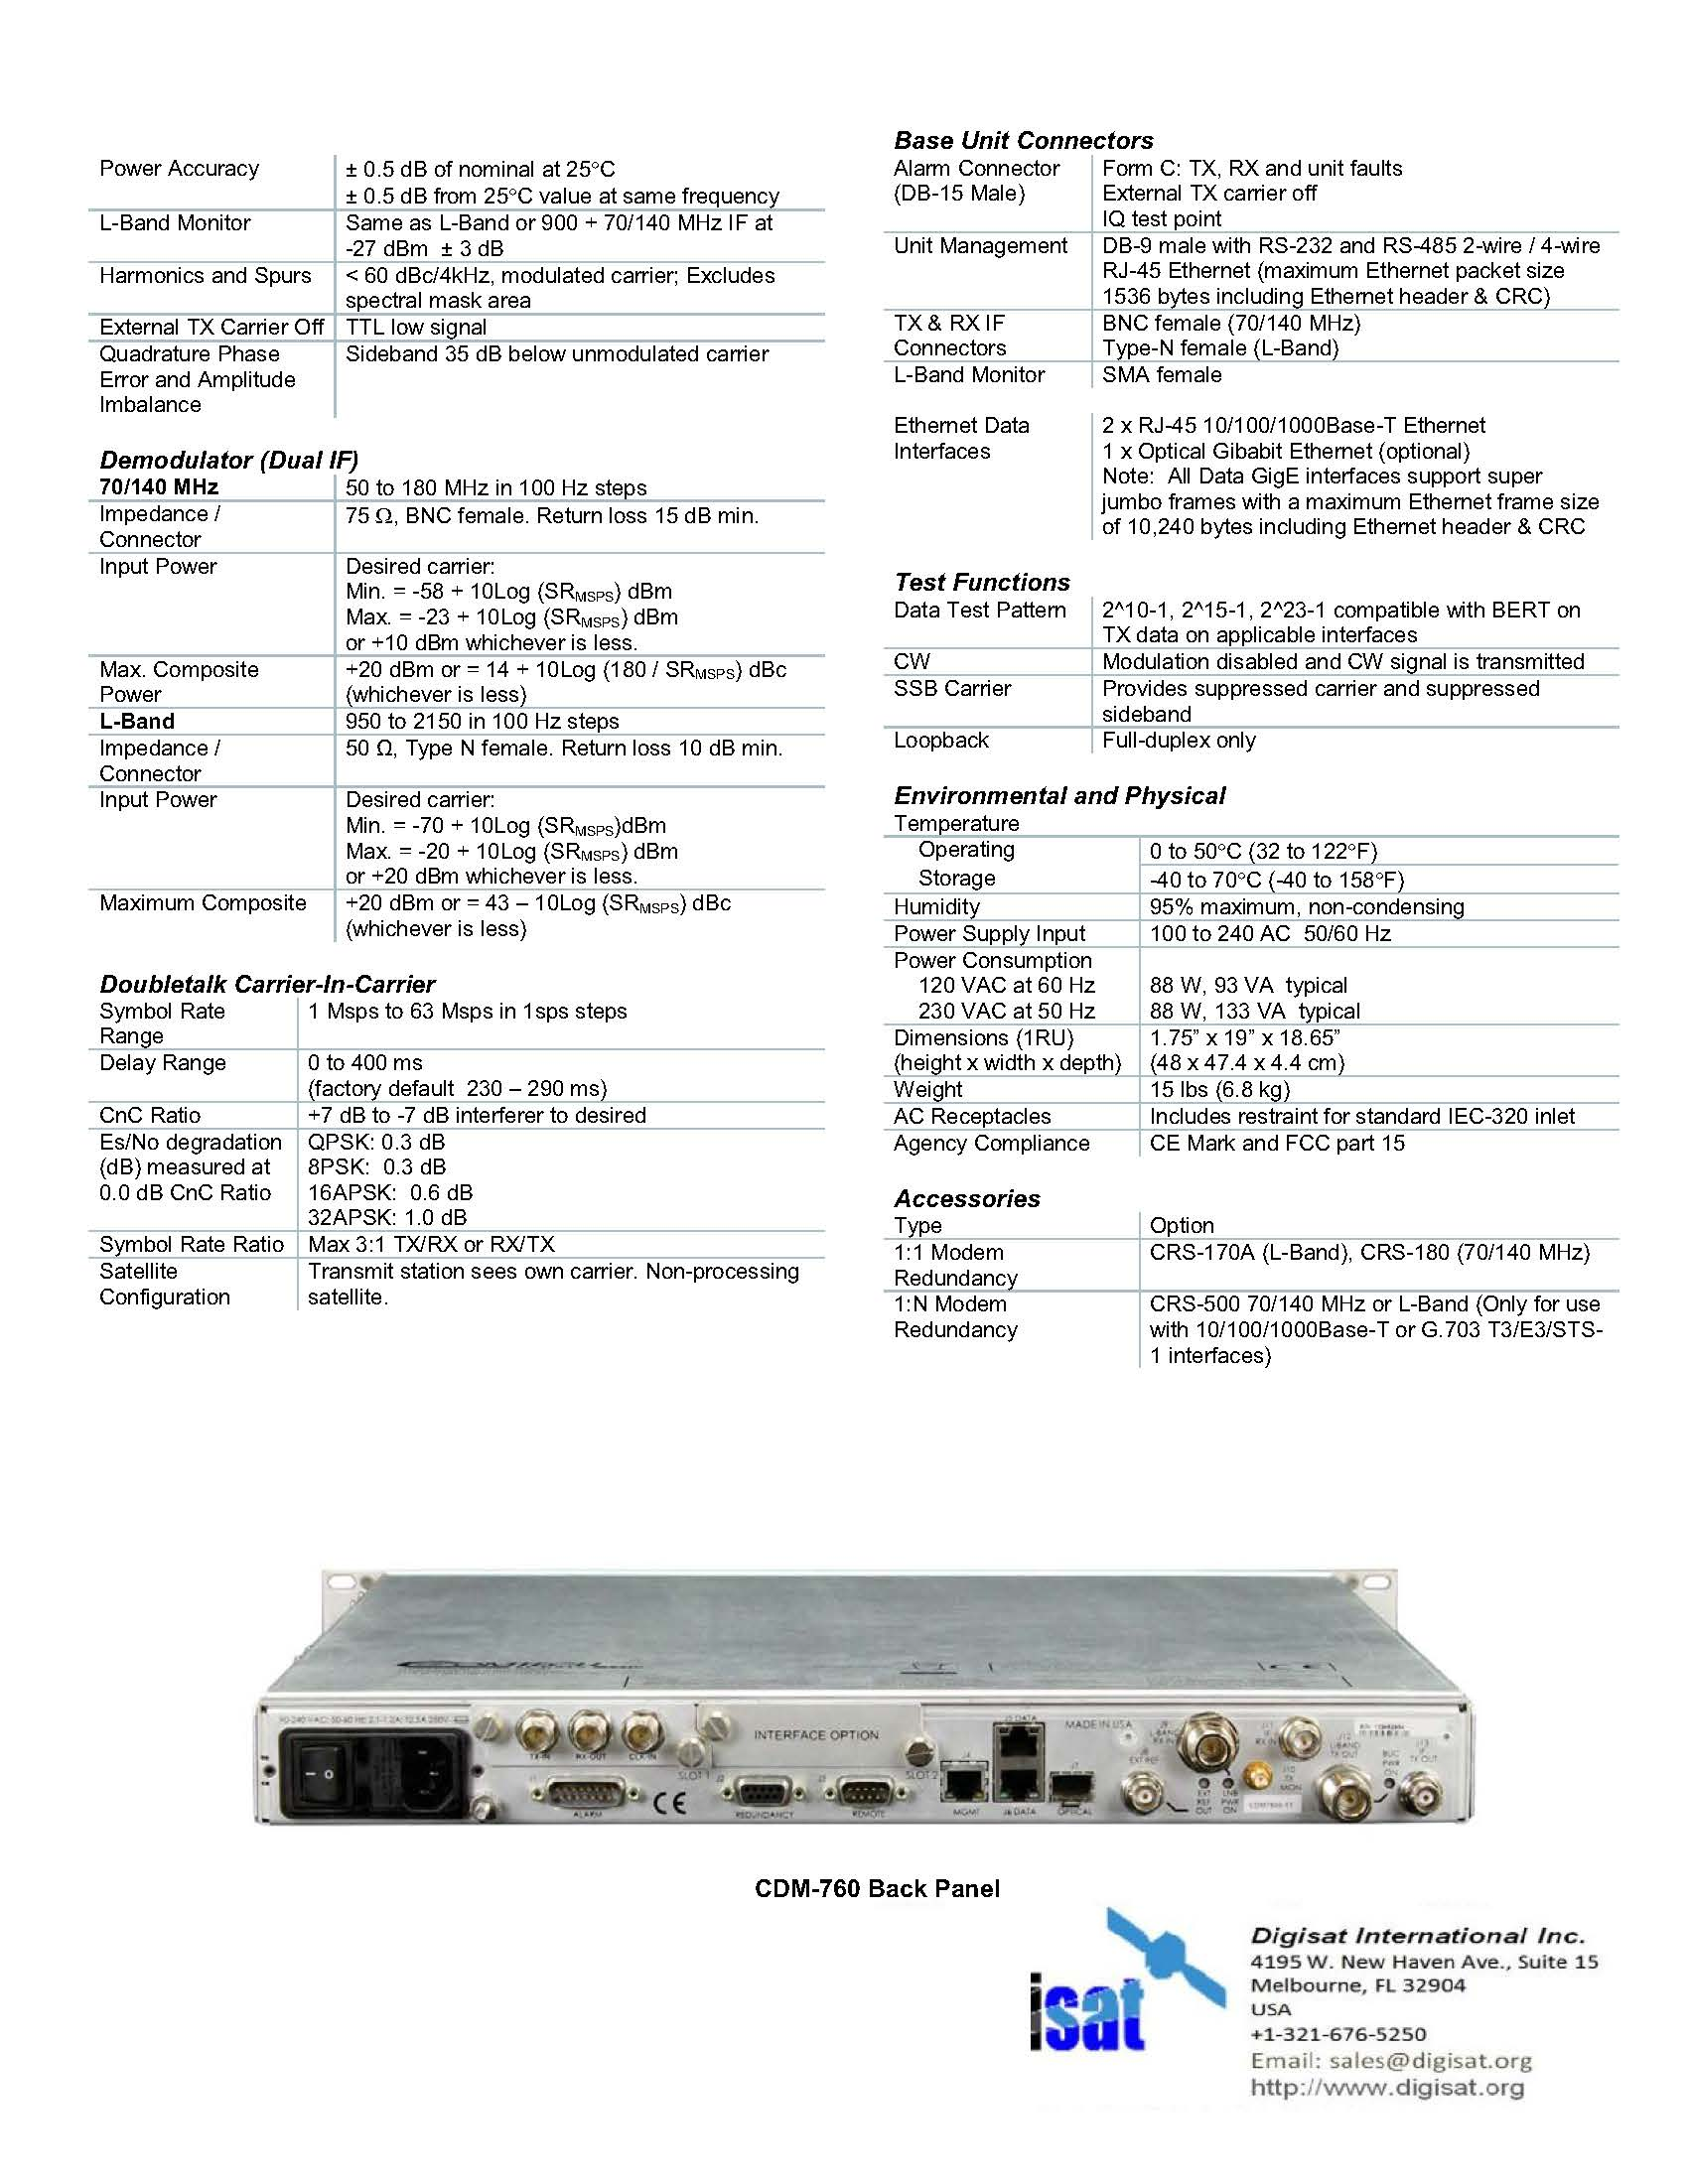 CDM-760 Technical Specifications Page 3